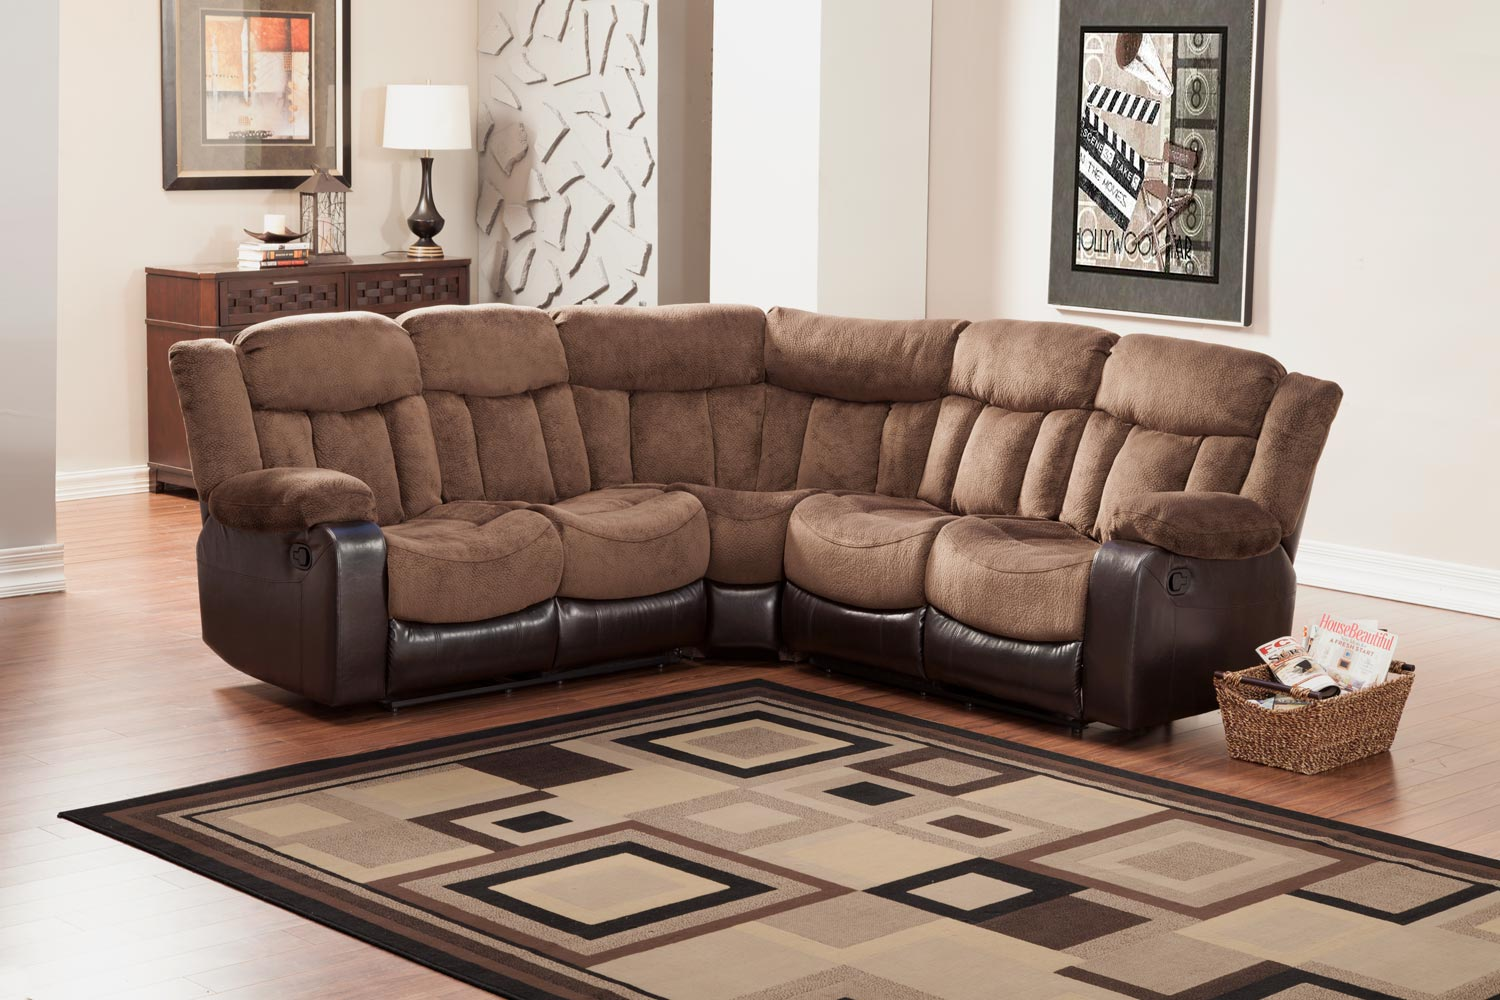 Homelegance vera reclining sectional sofa chocolate for Furniture 2 u